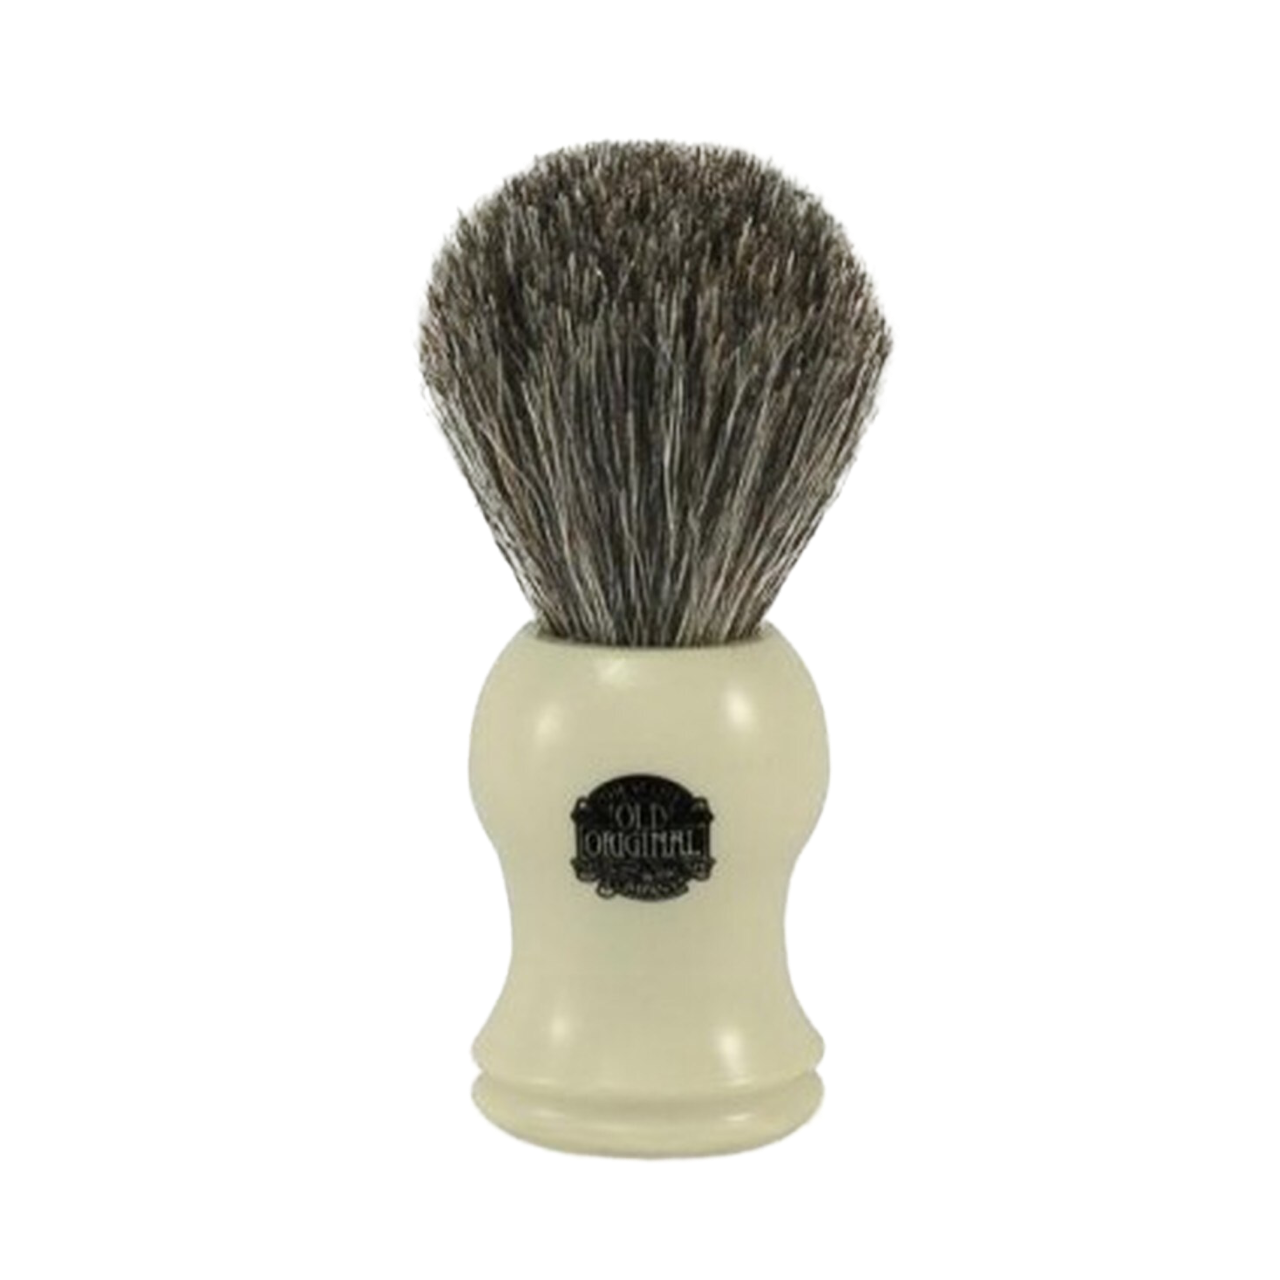 Vulfix 2006 - Pure Badger Shave Brush